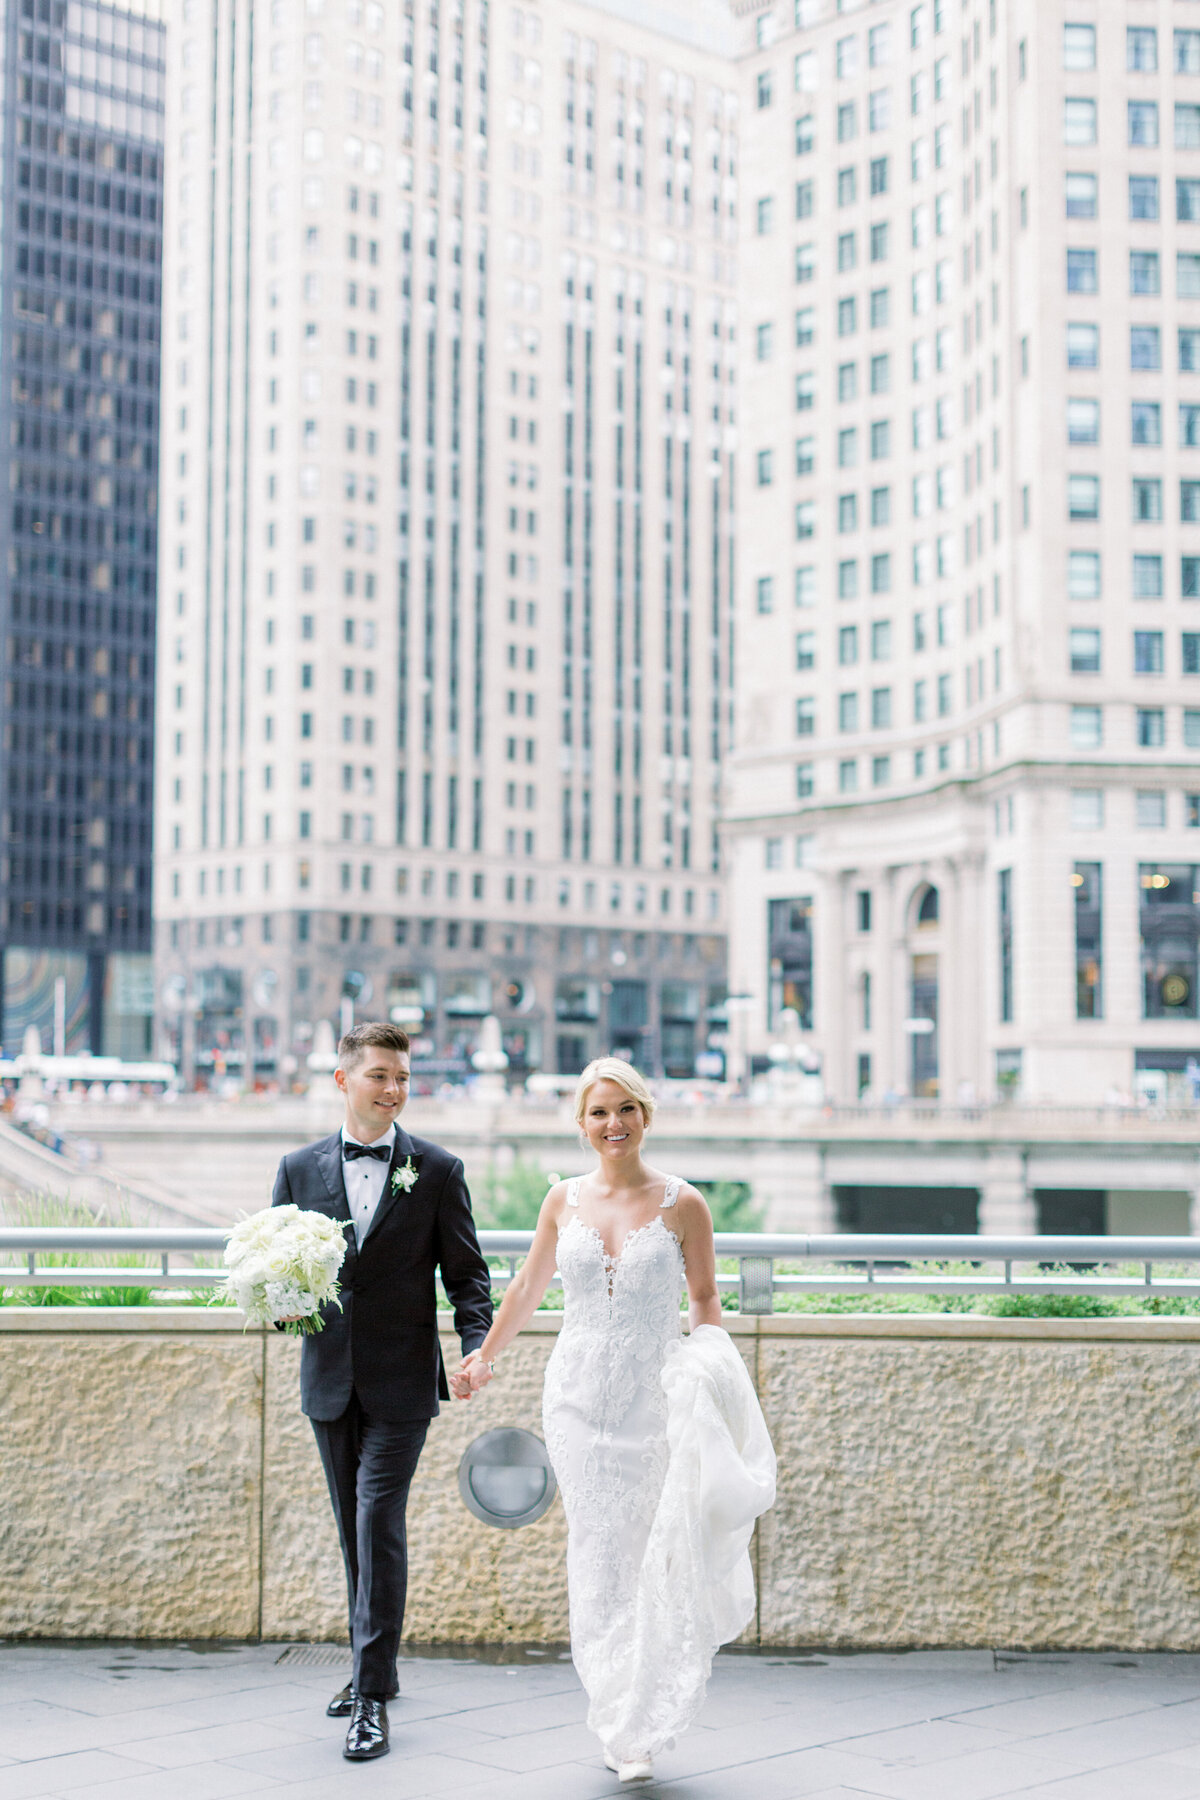 Downtown Chicago Wedding Photographer_Shauna and Jordon Photography023